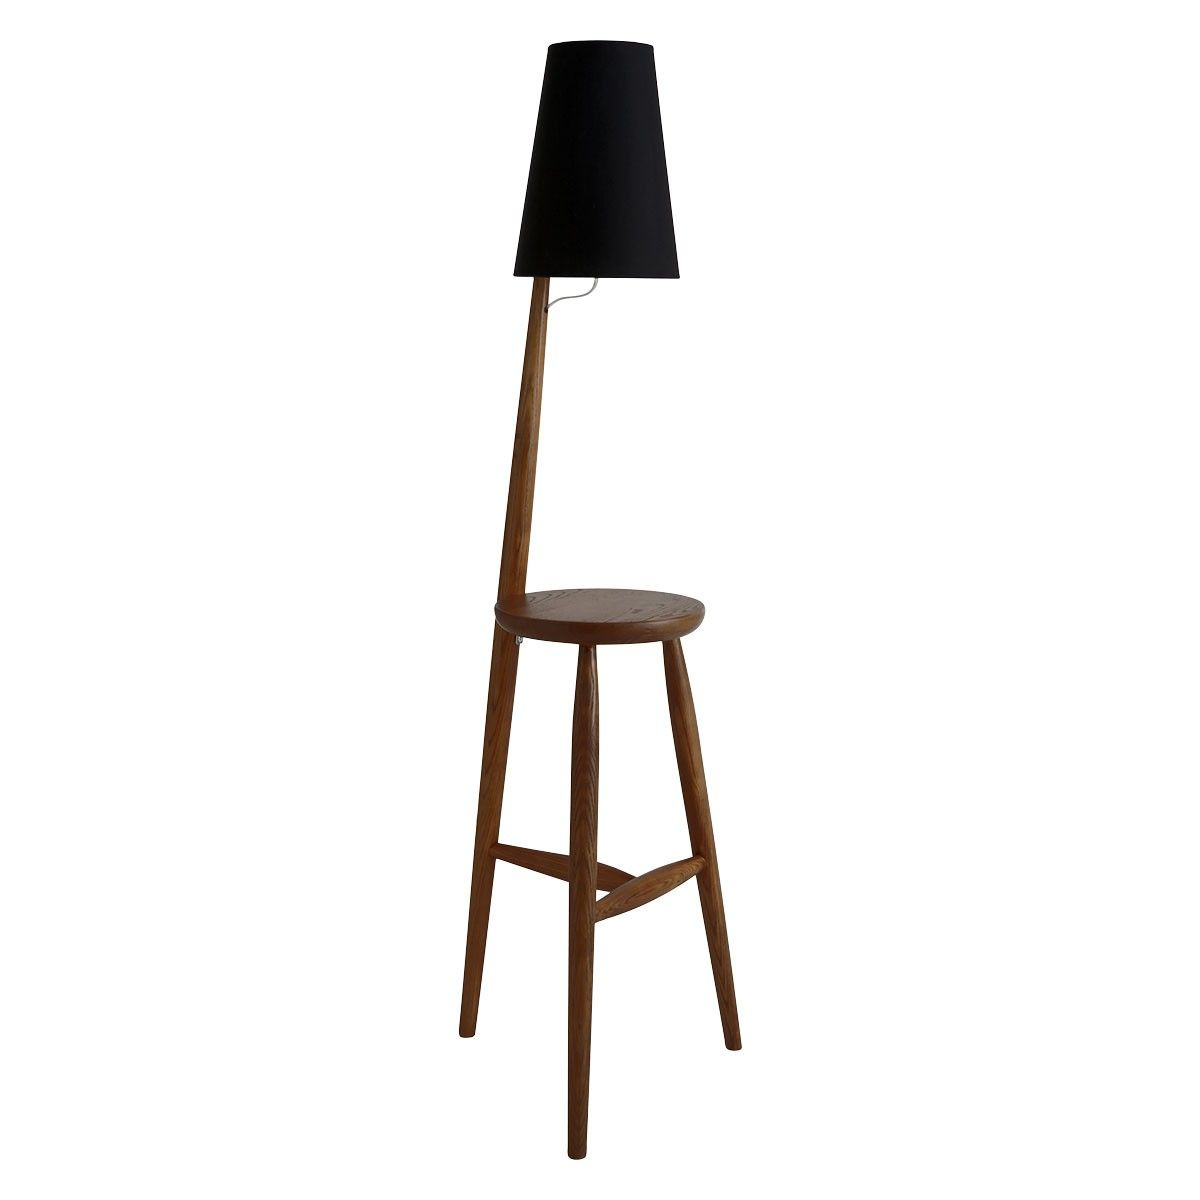 Wallace Walnut Floor Lamp And Table With Black Shade Buy Now At Habitat Uk Black Floor Lamp Floor Lamp Walnut Floors